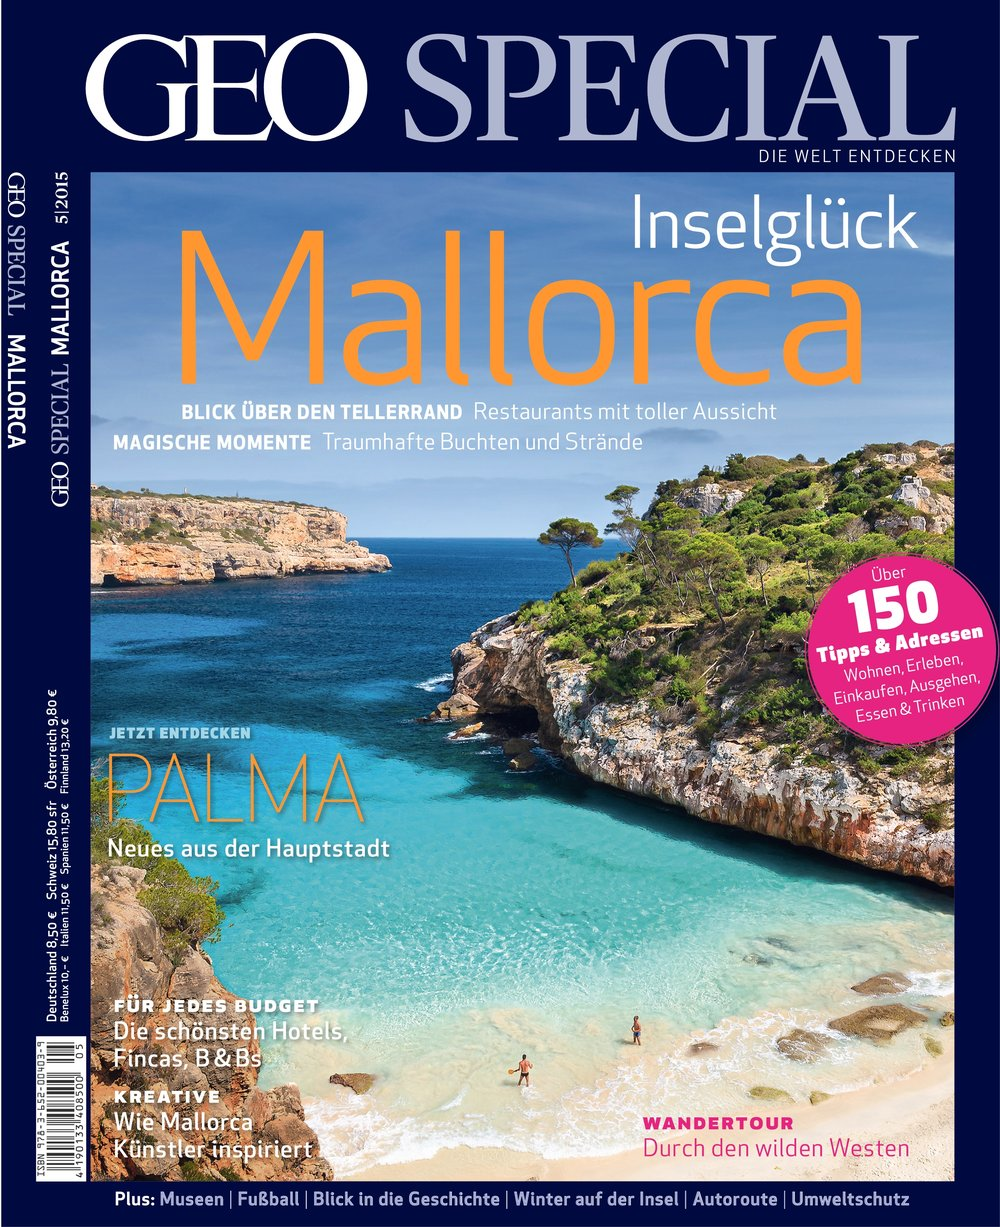 GEO SPECIAL 05/2015